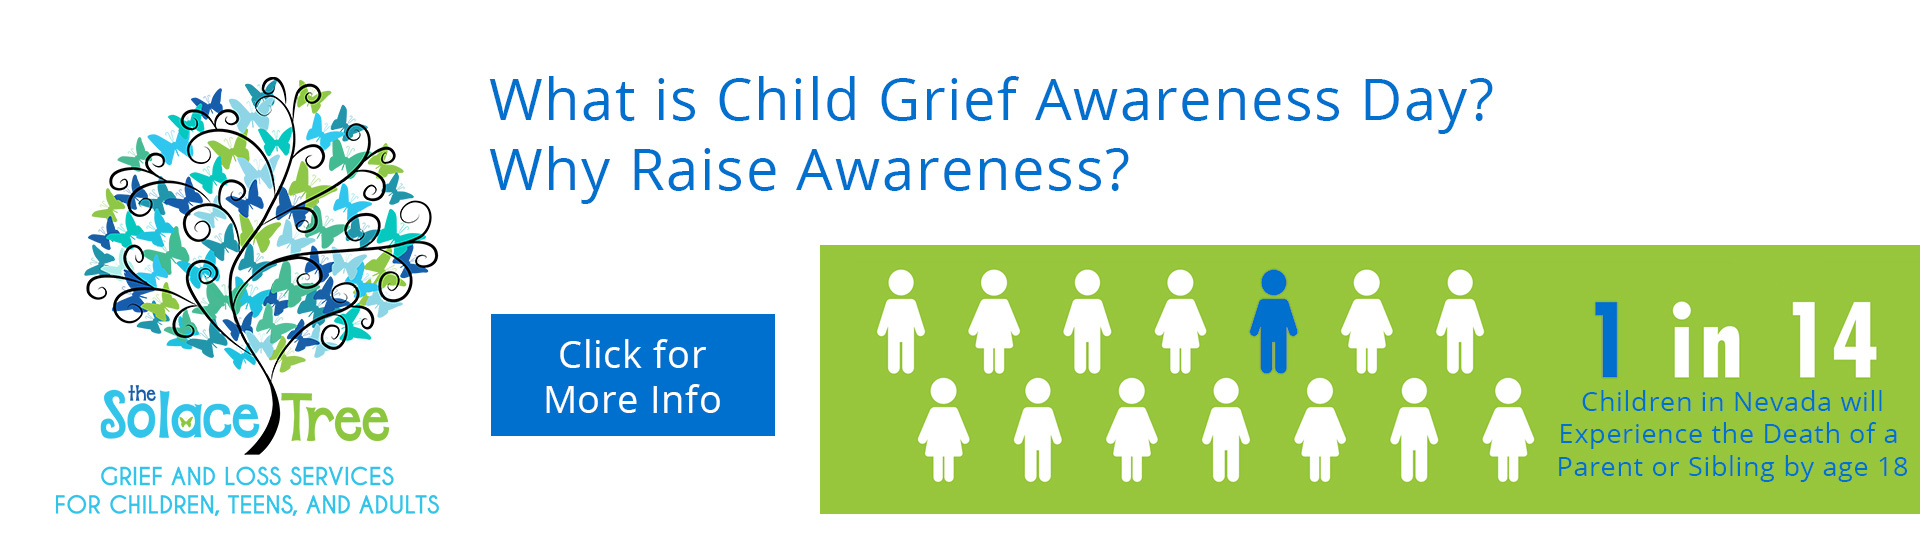 Child Grief Awareness Day 2019